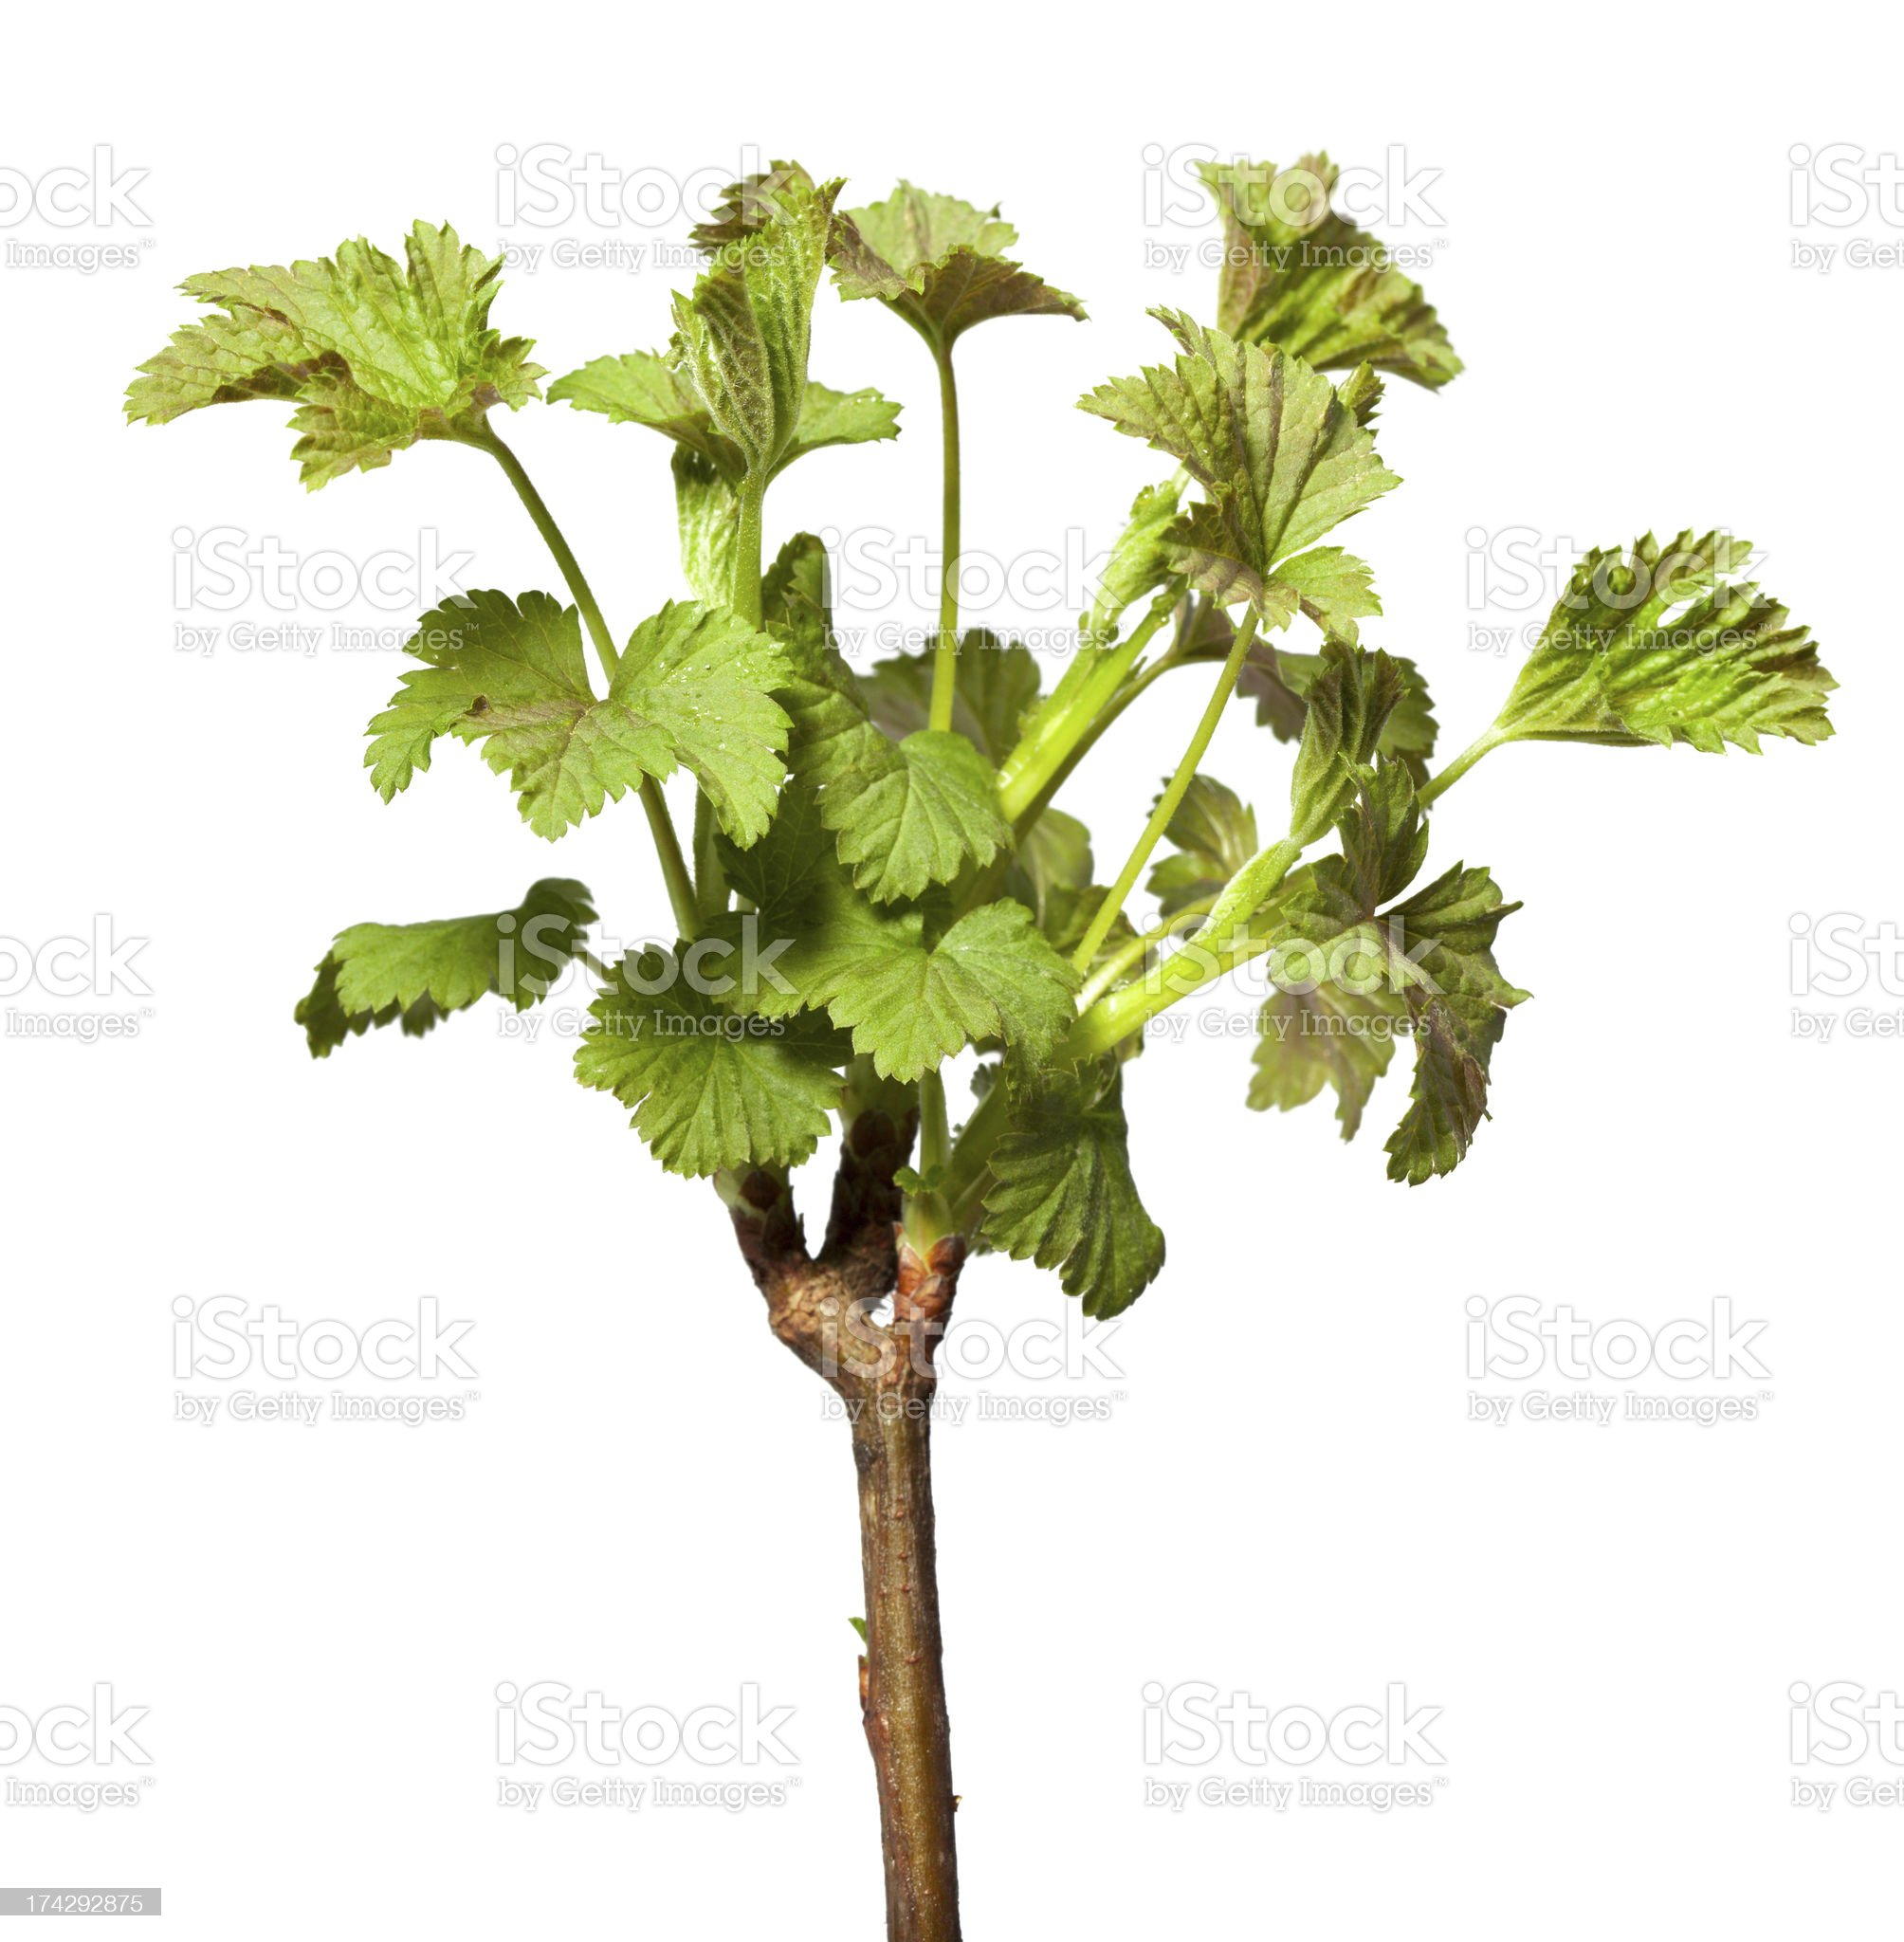 Blooming twig of blackcurrant royalty-free stock photo